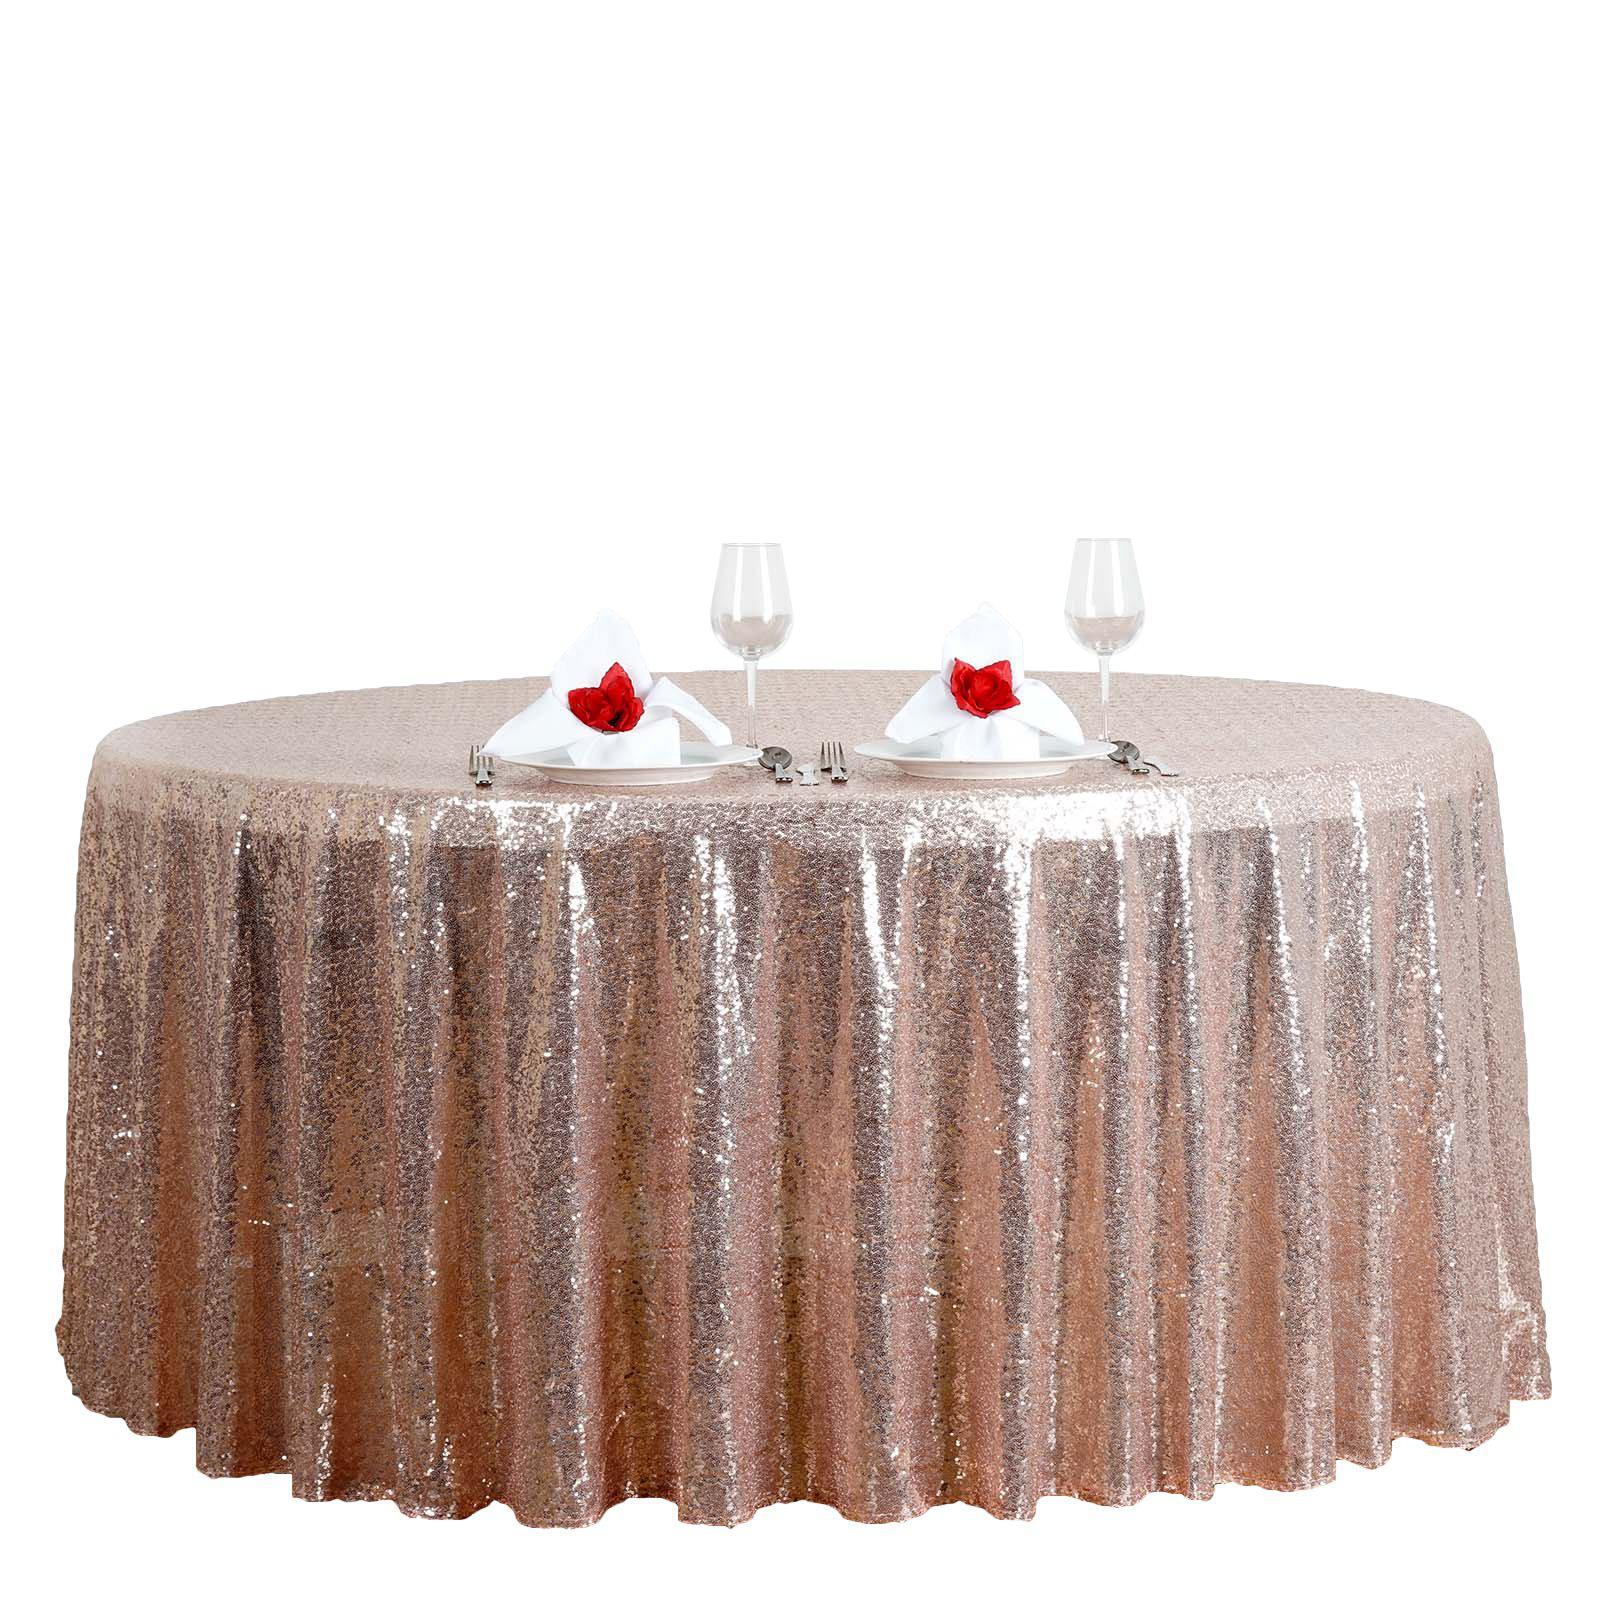 rose gold blush premium sequin round tablecloth tablecloths tab for inch accent table brown linen threshold fretwork concrete top outdoor dining bulk tennis balls ottawa hammered